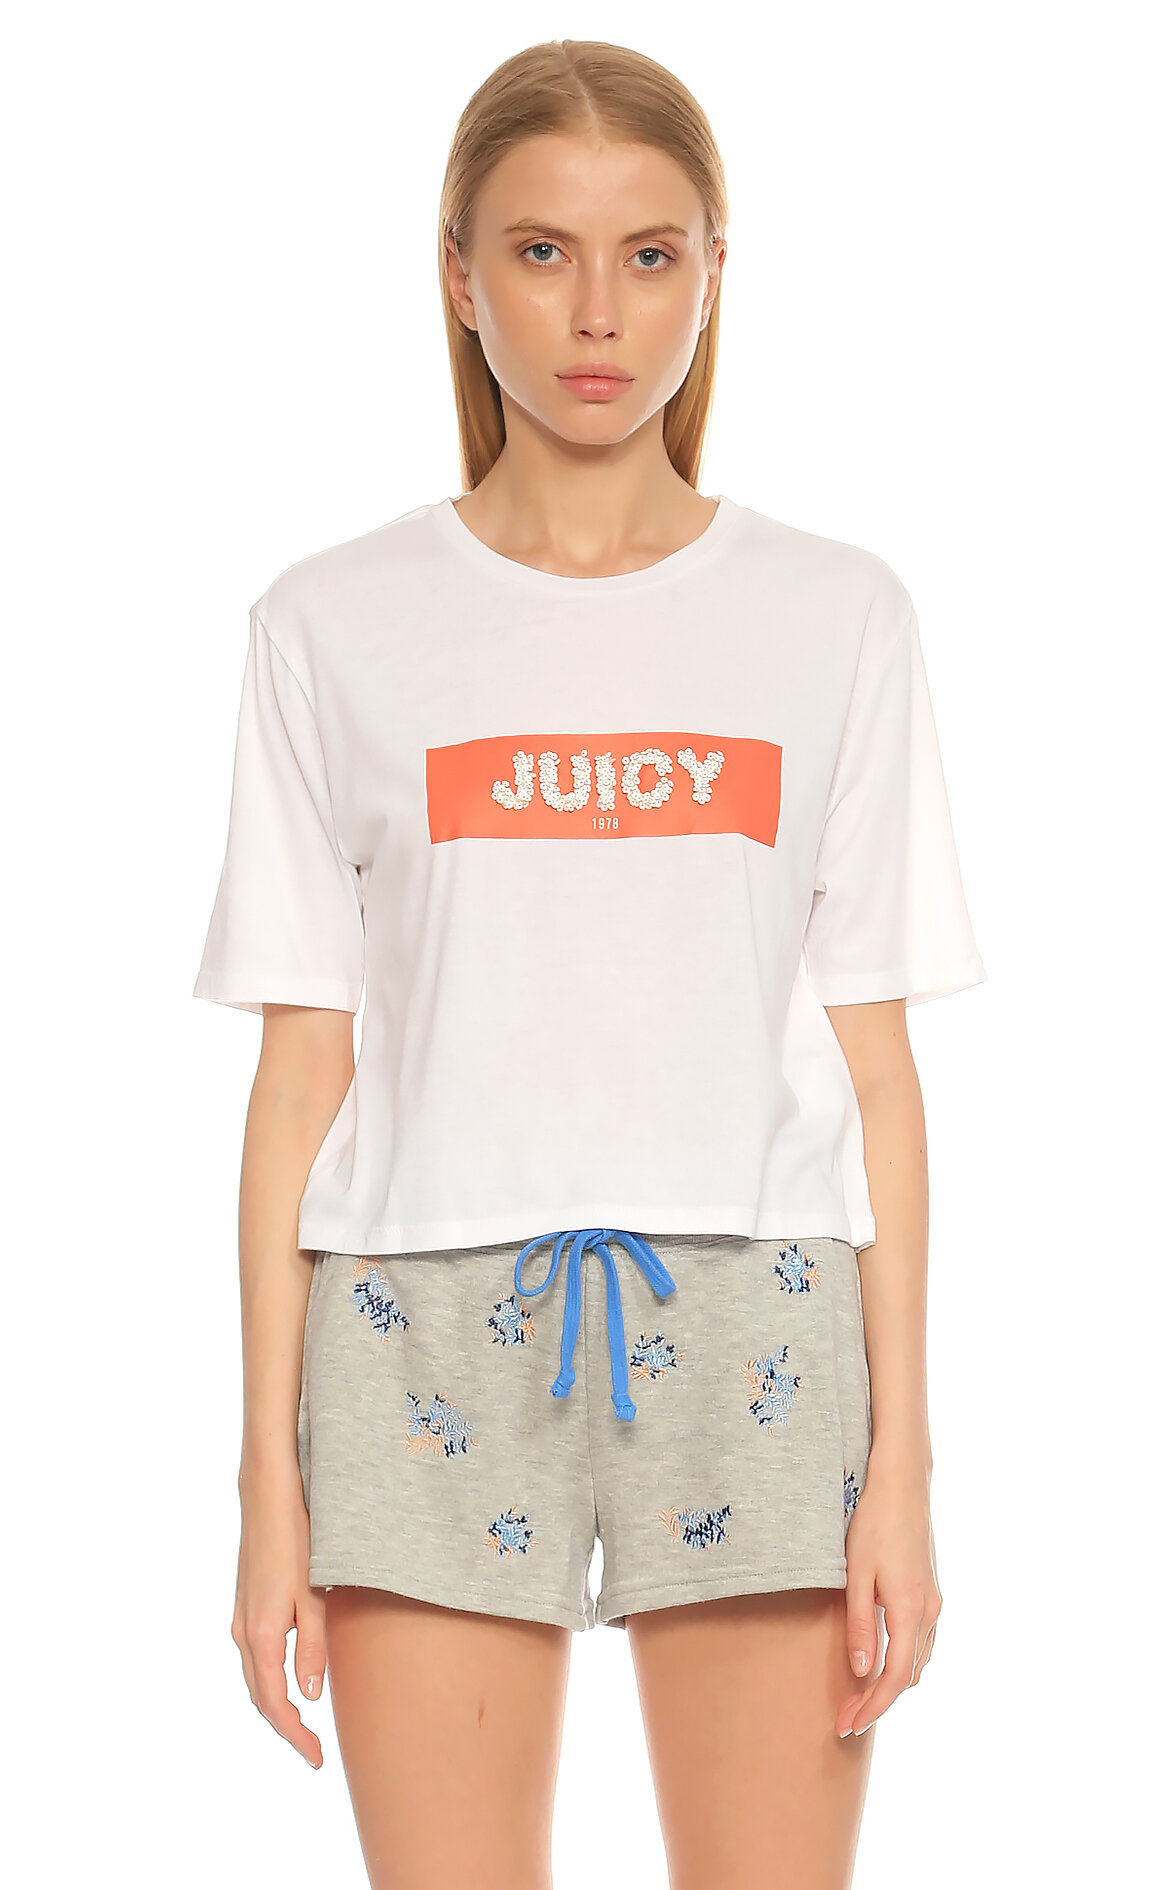 Juicy Couture-Juicy Couture Pano Desen Beyaz T-Shirt